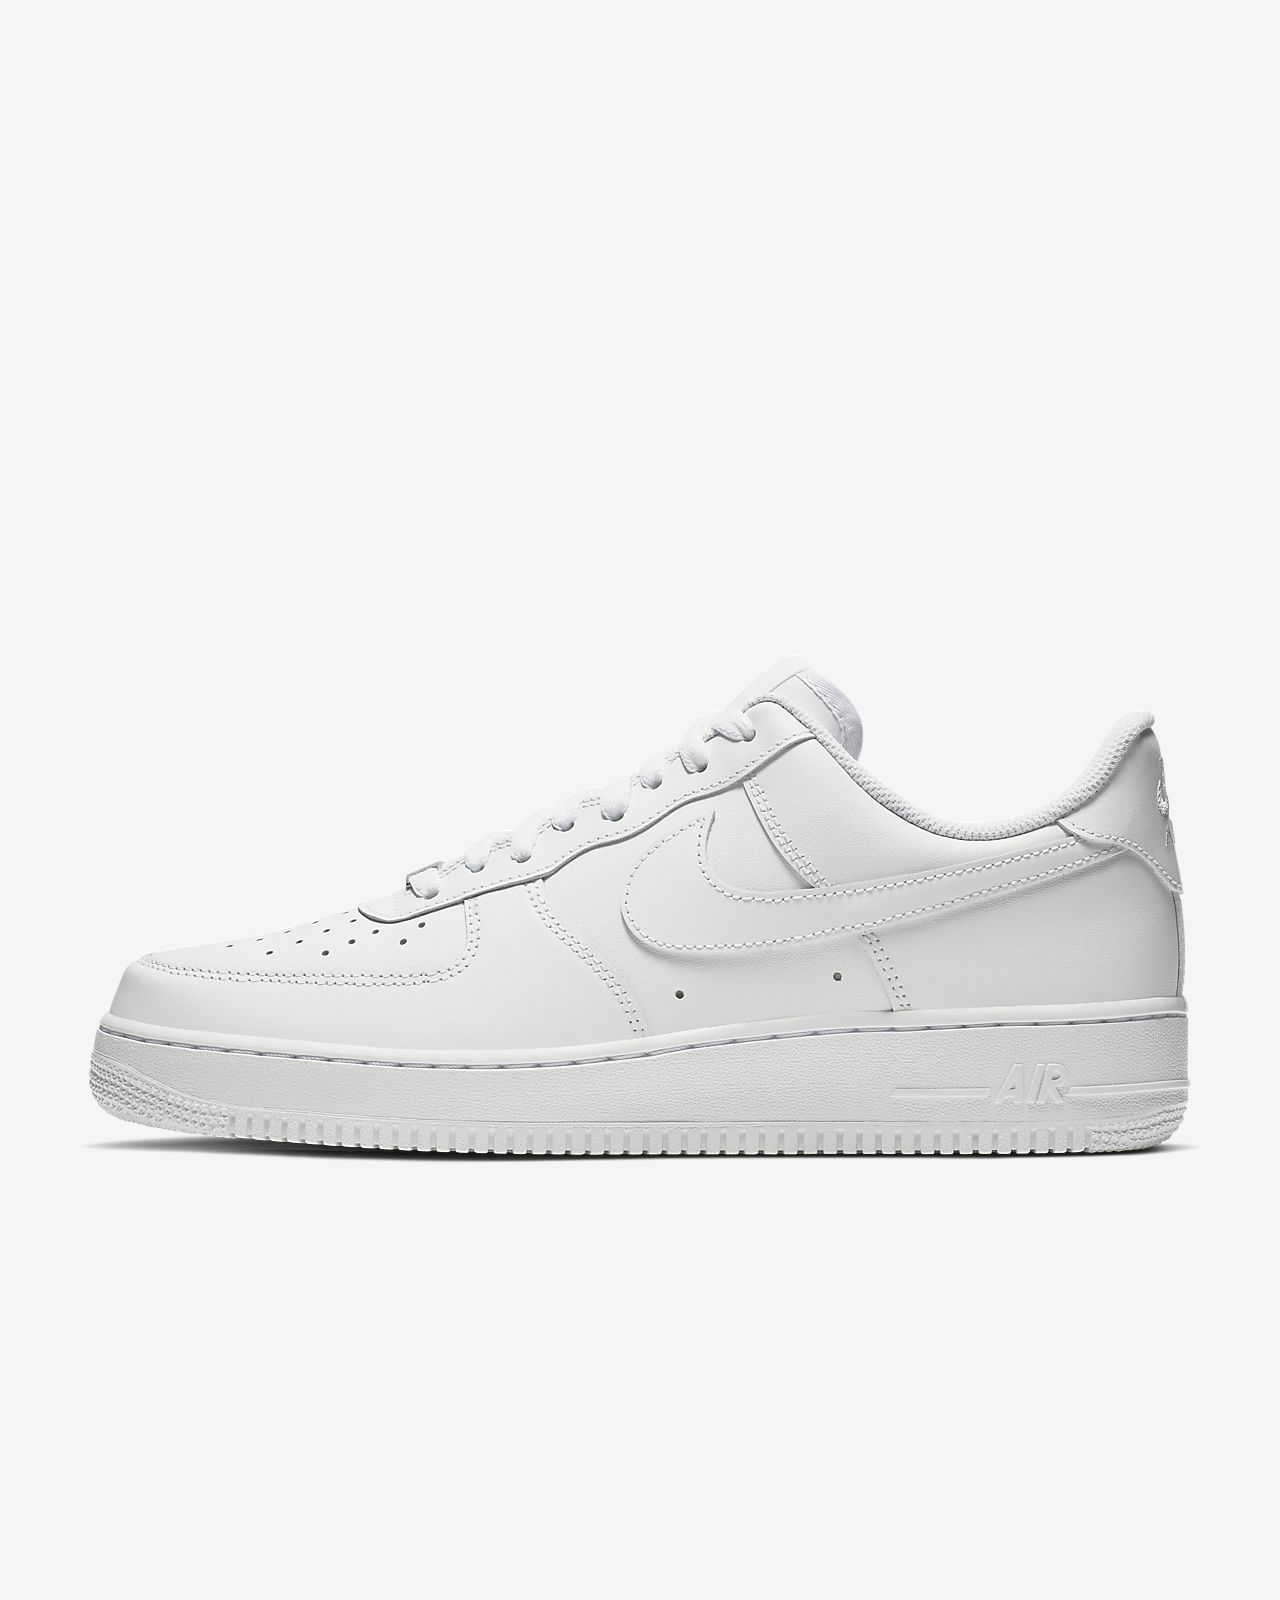 0486f6c9f58fb Low Resolution Nike Air Force 1  07 Zapatillas Nike Air Force 1  07  Zapatillas